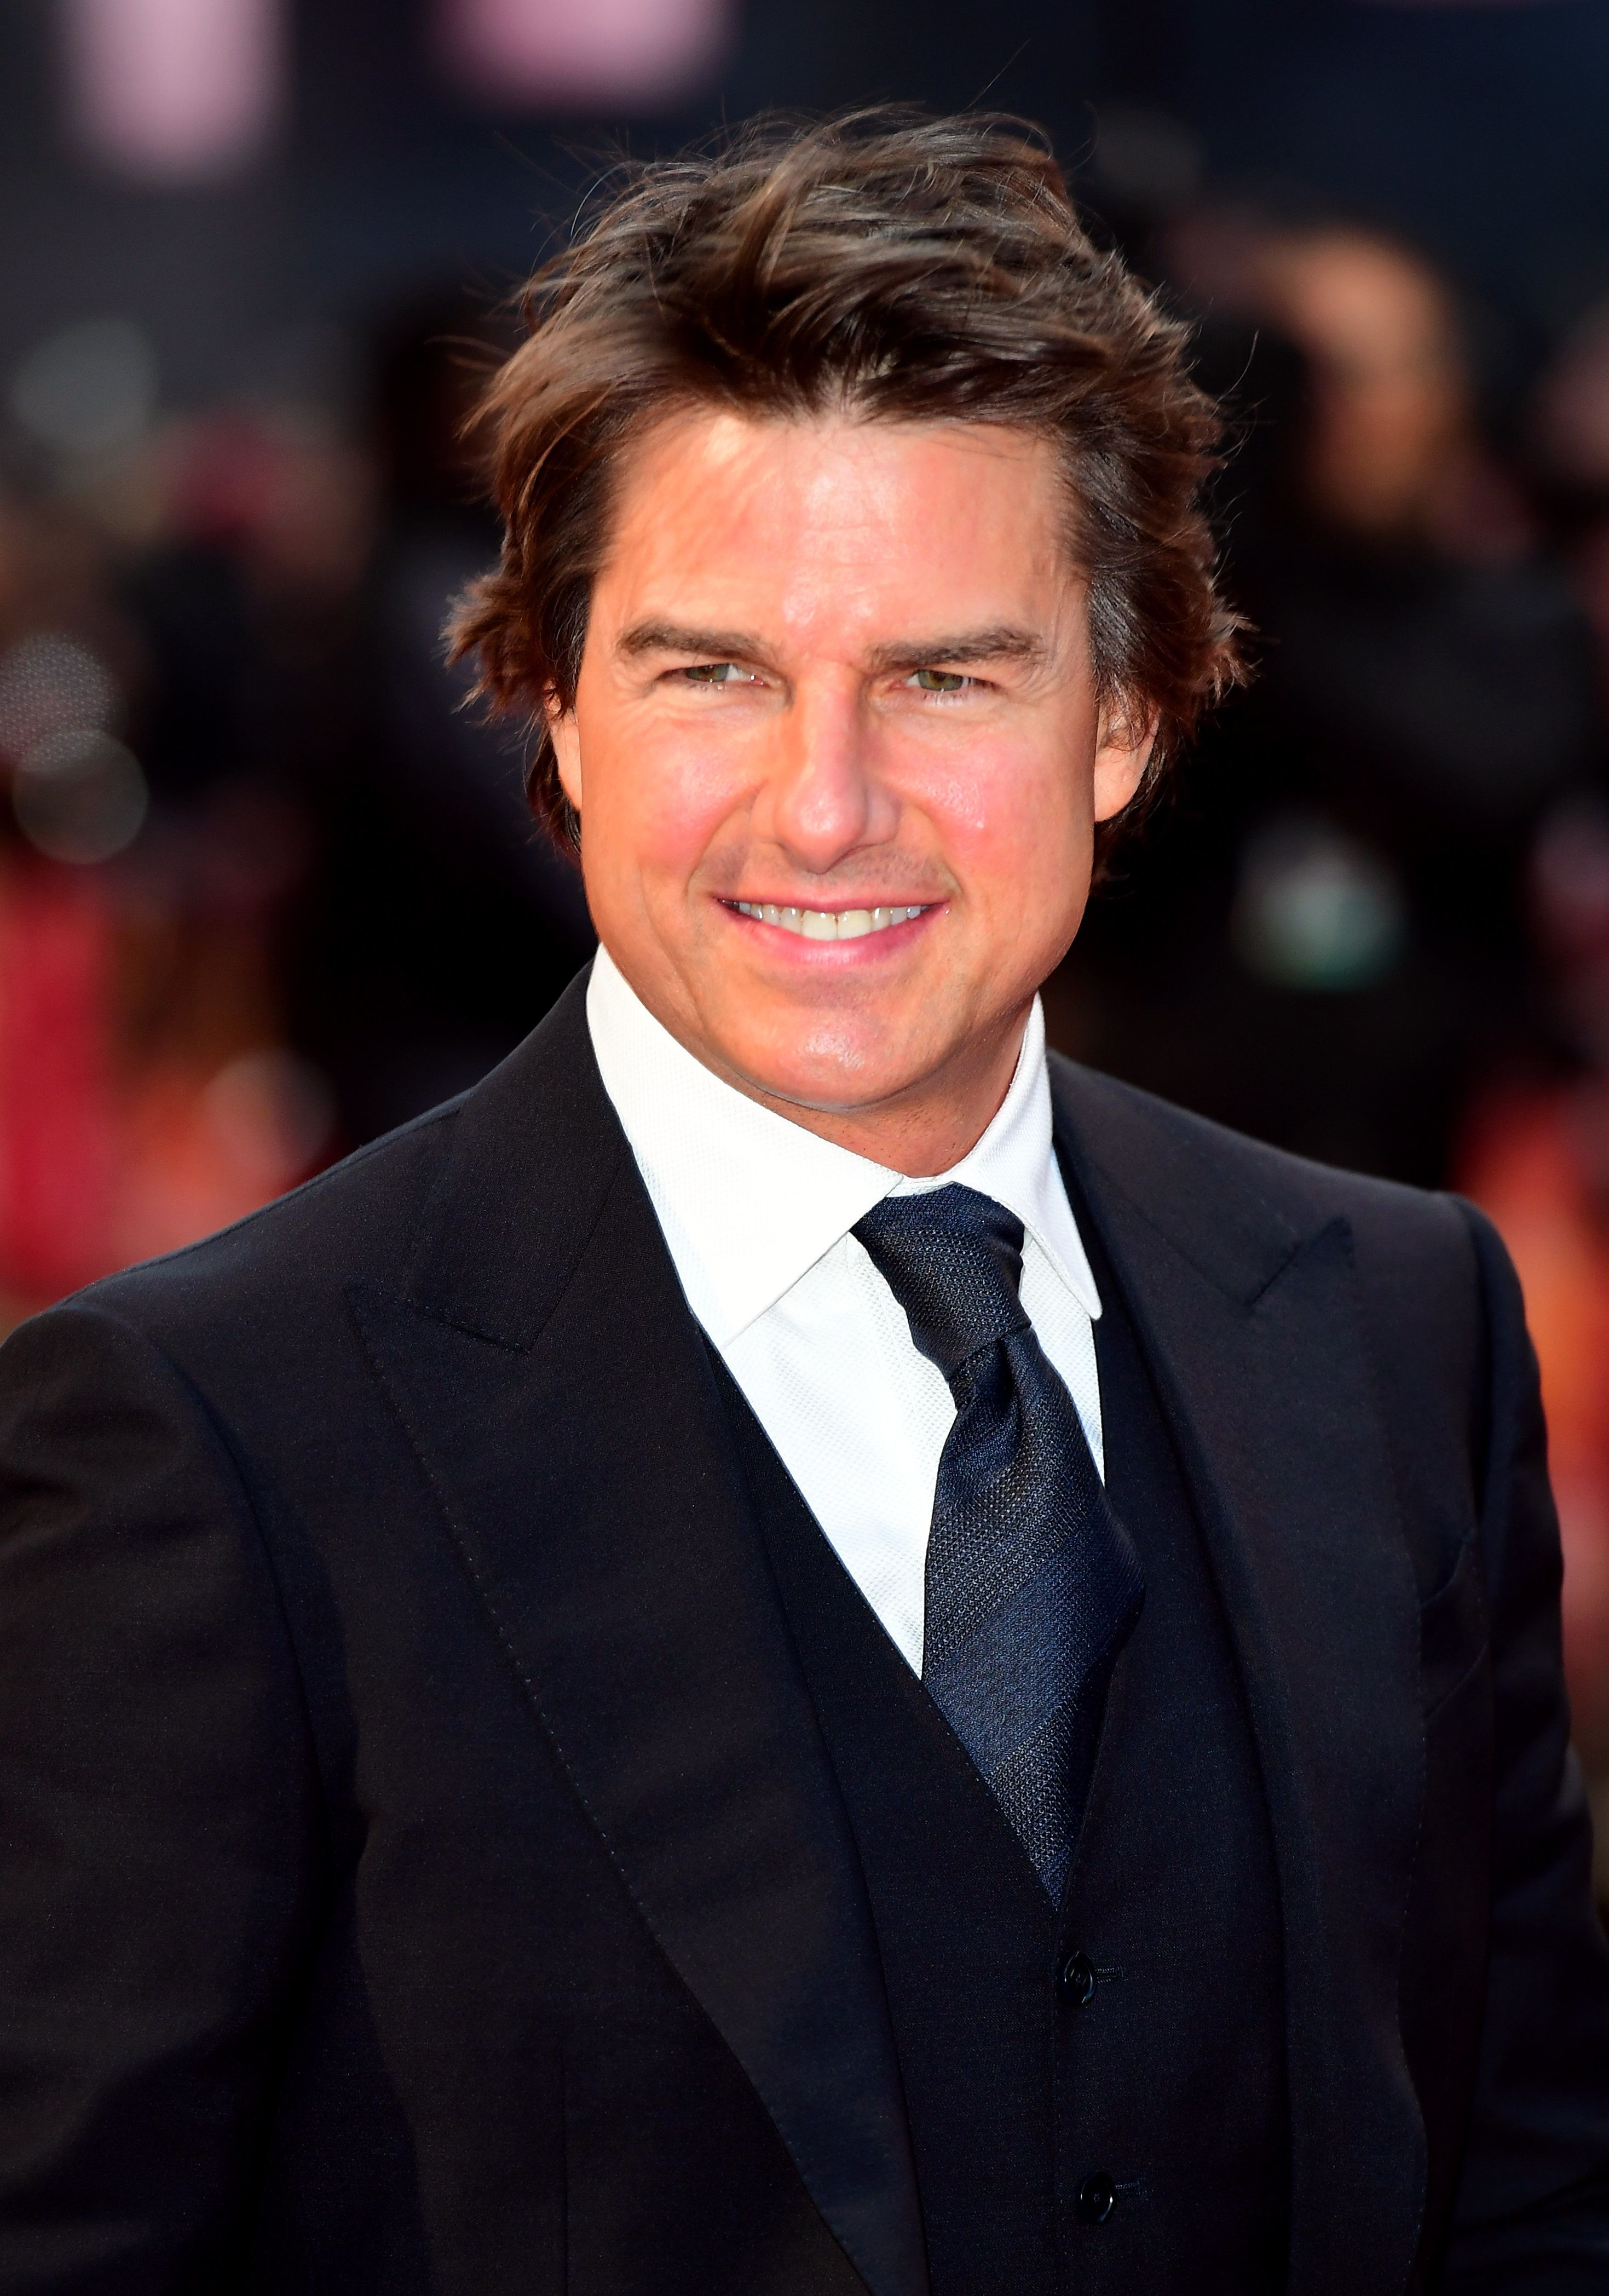 Tom Cruise 'Out of Action For Months' After Breaking Two Bones In Failed 'Mission: Impossible'